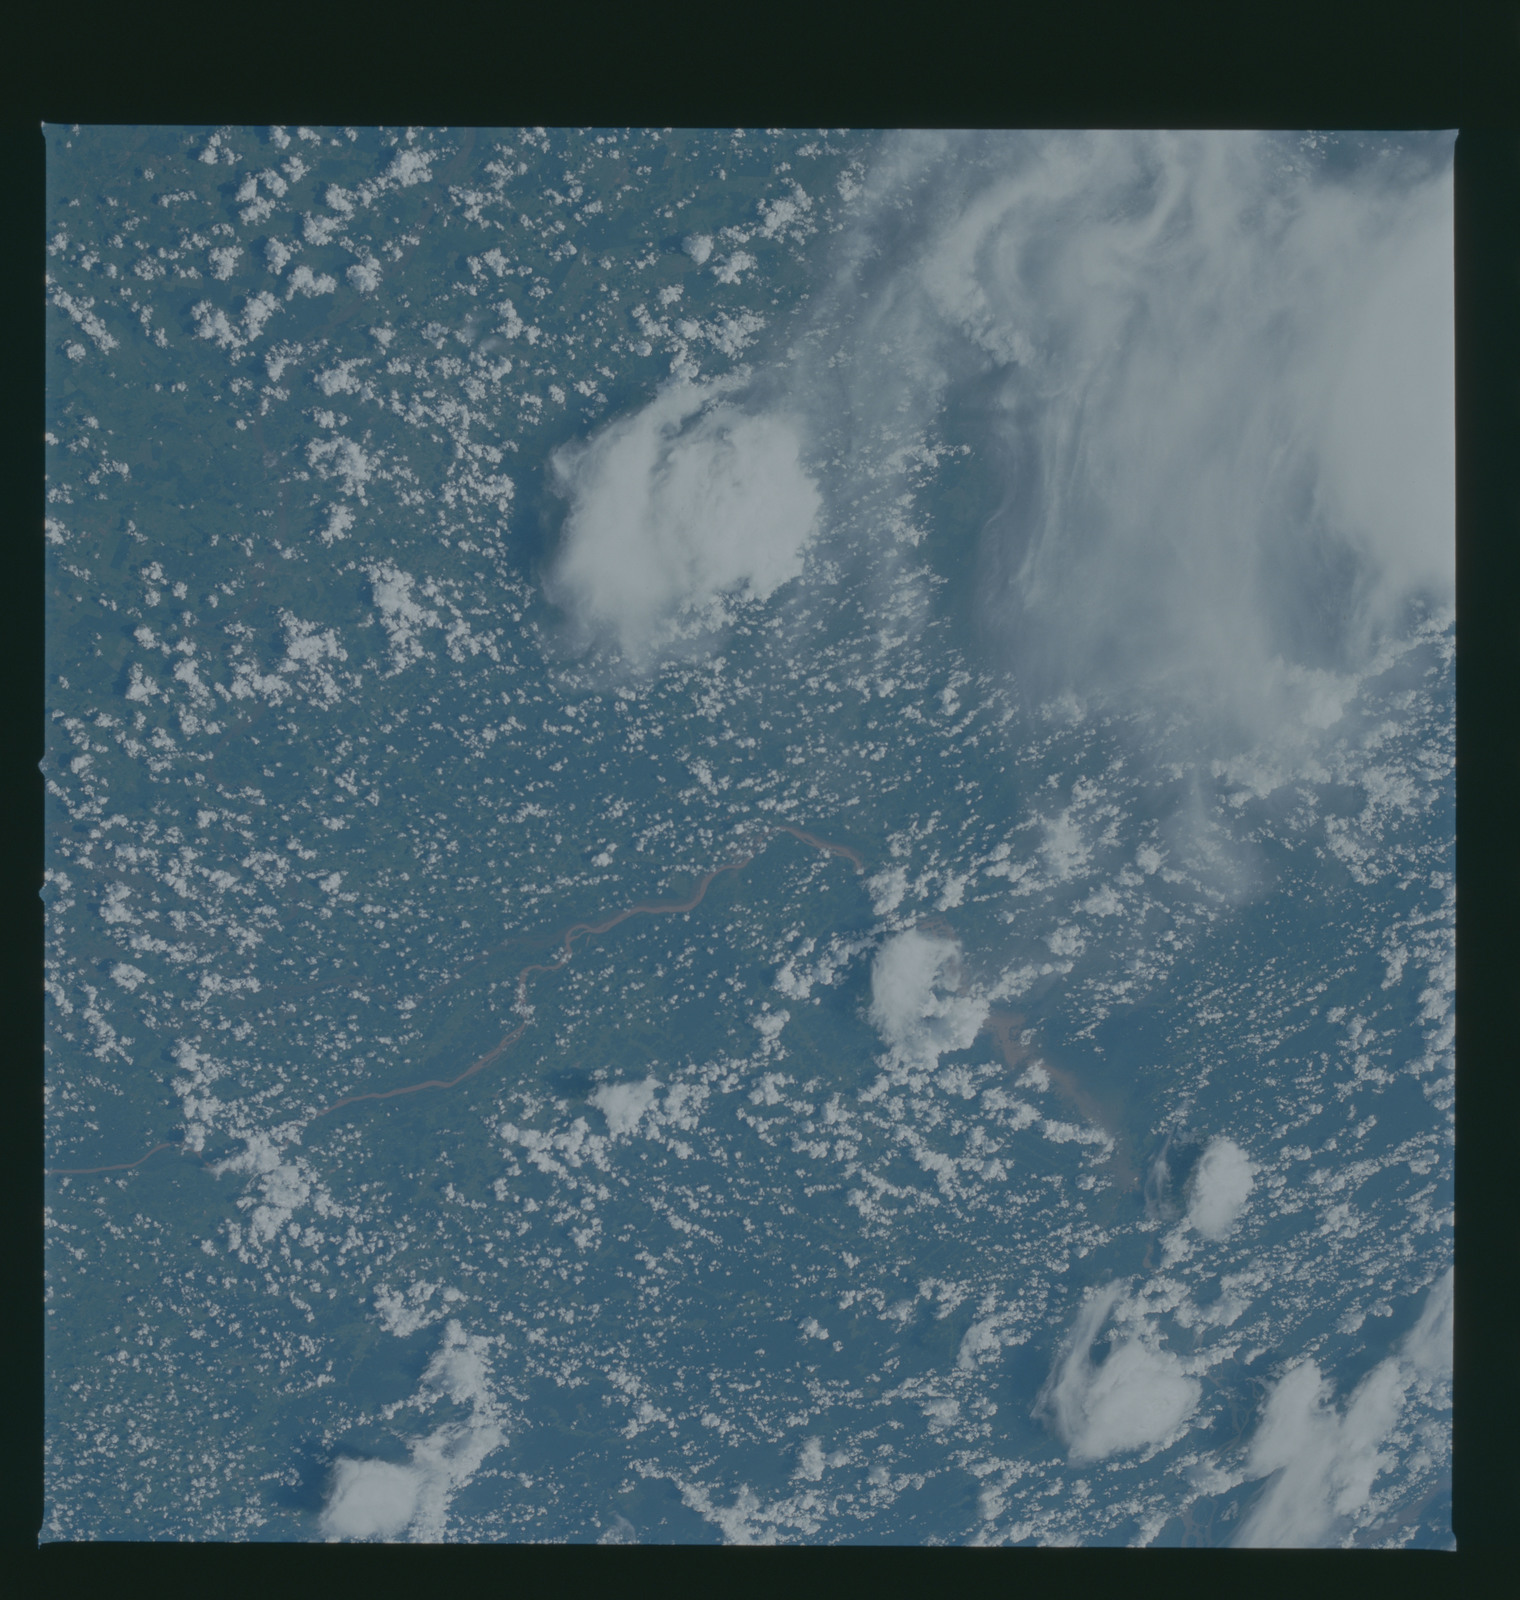 S37-96-058 - STS-037 - Earth observations taken from OV-104 during STS-37 mission